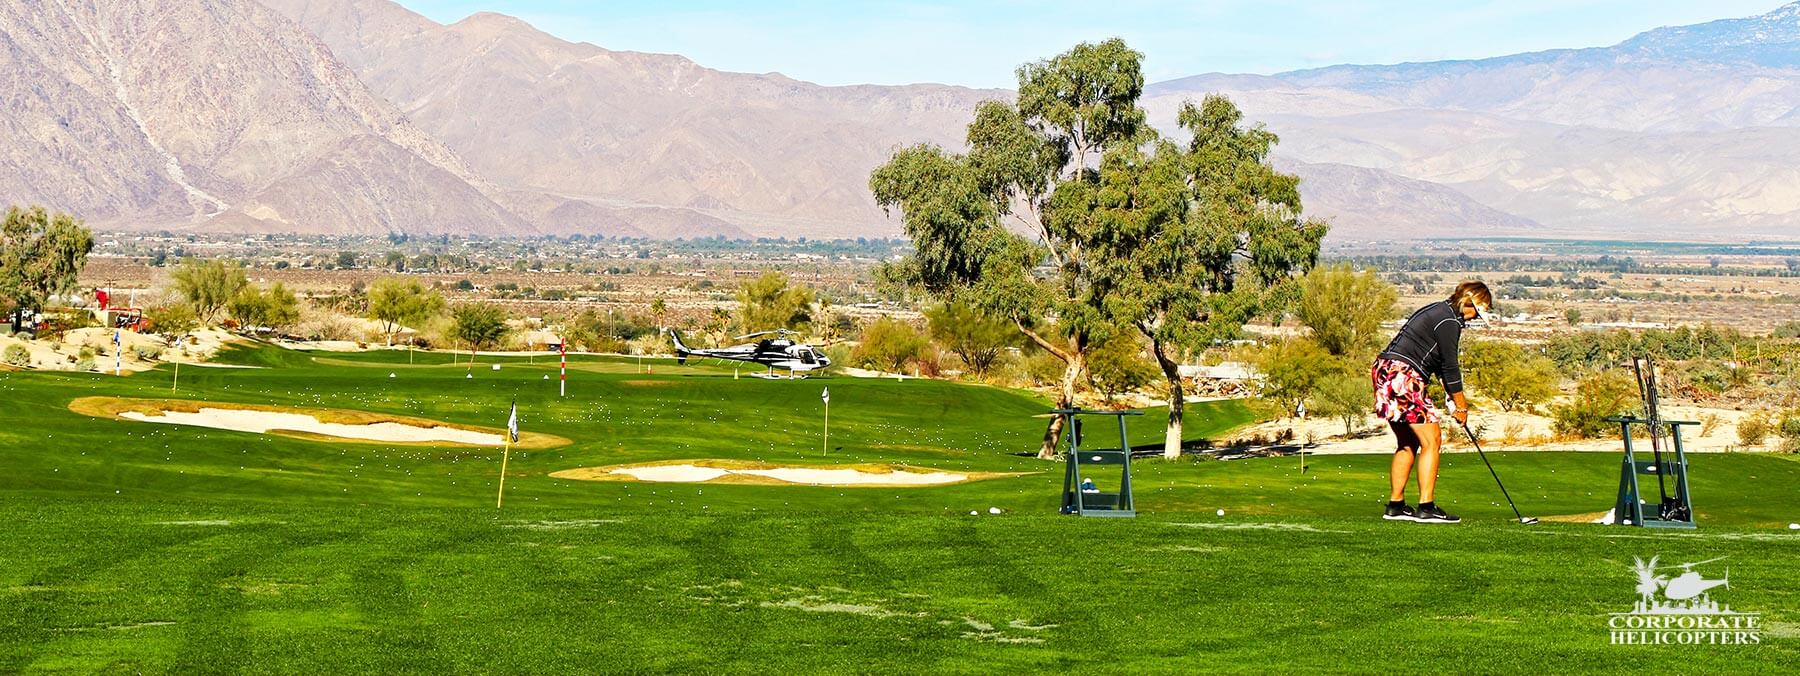 A helicopter golf adventure from San Diego to Rams Hill in Borrego Springs (and back).